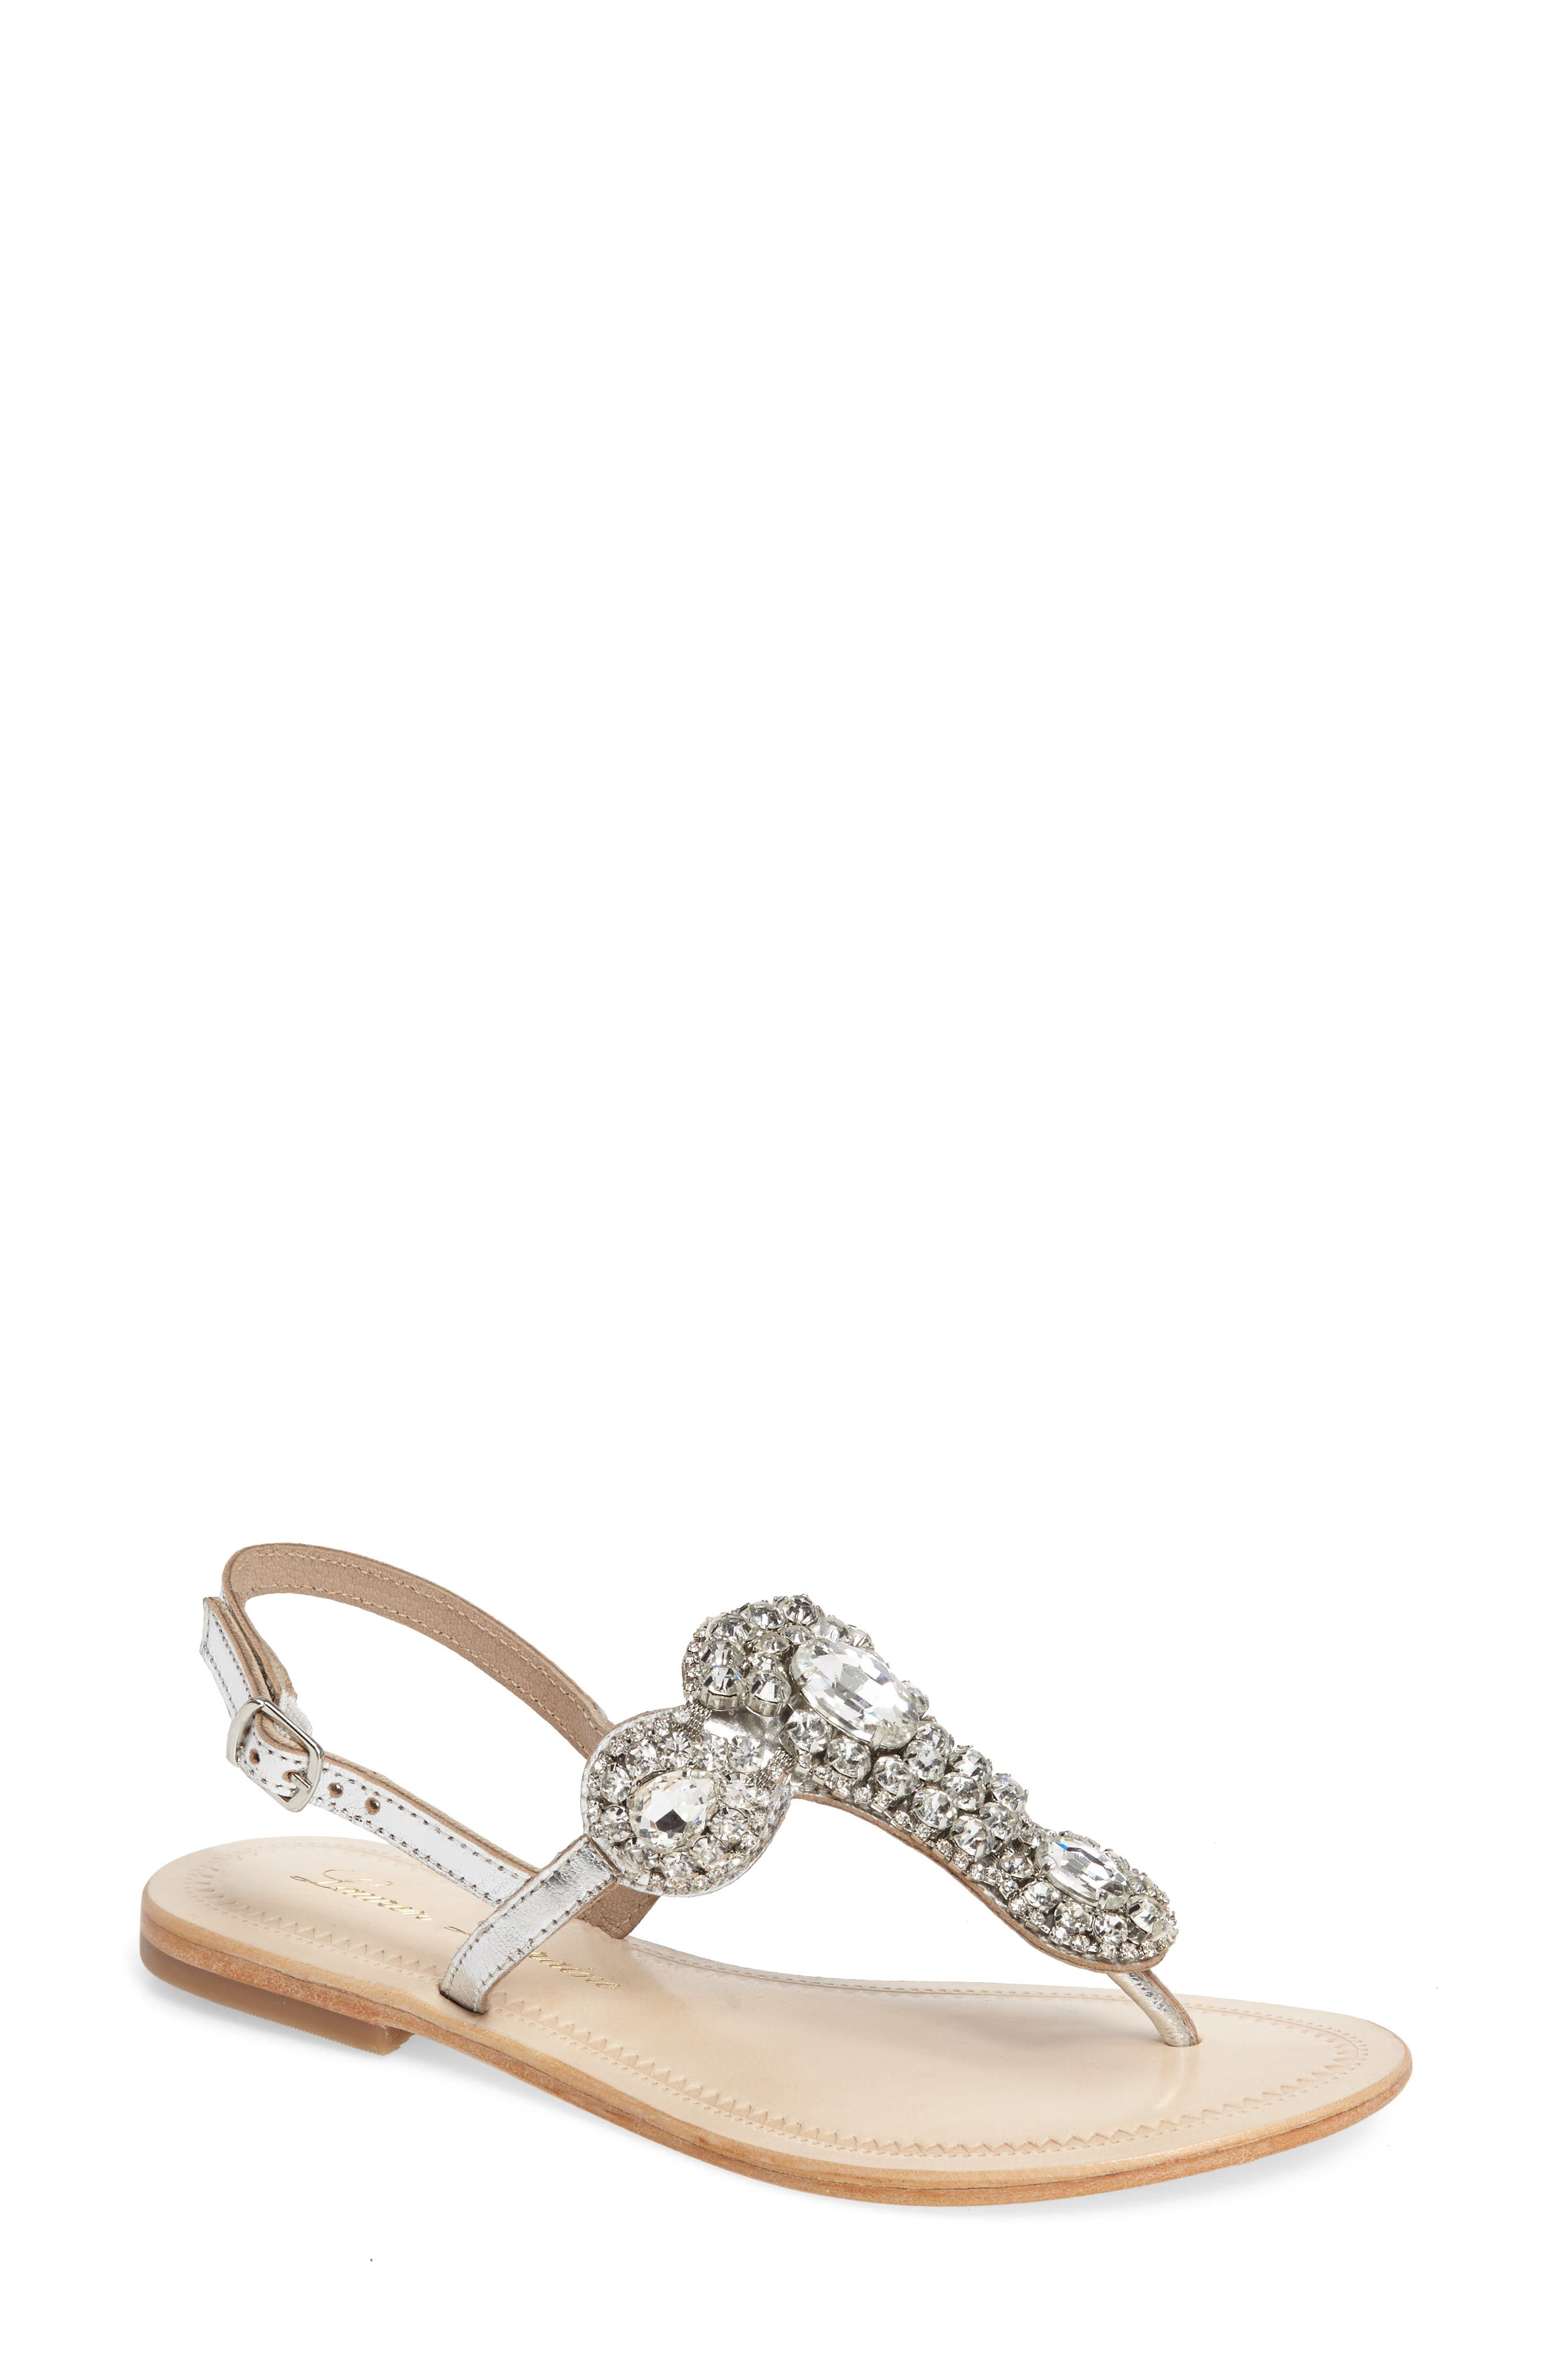 Bahama Crystal Embellished Sandal,                             Main thumbnail 1, color,                             Silver Leather